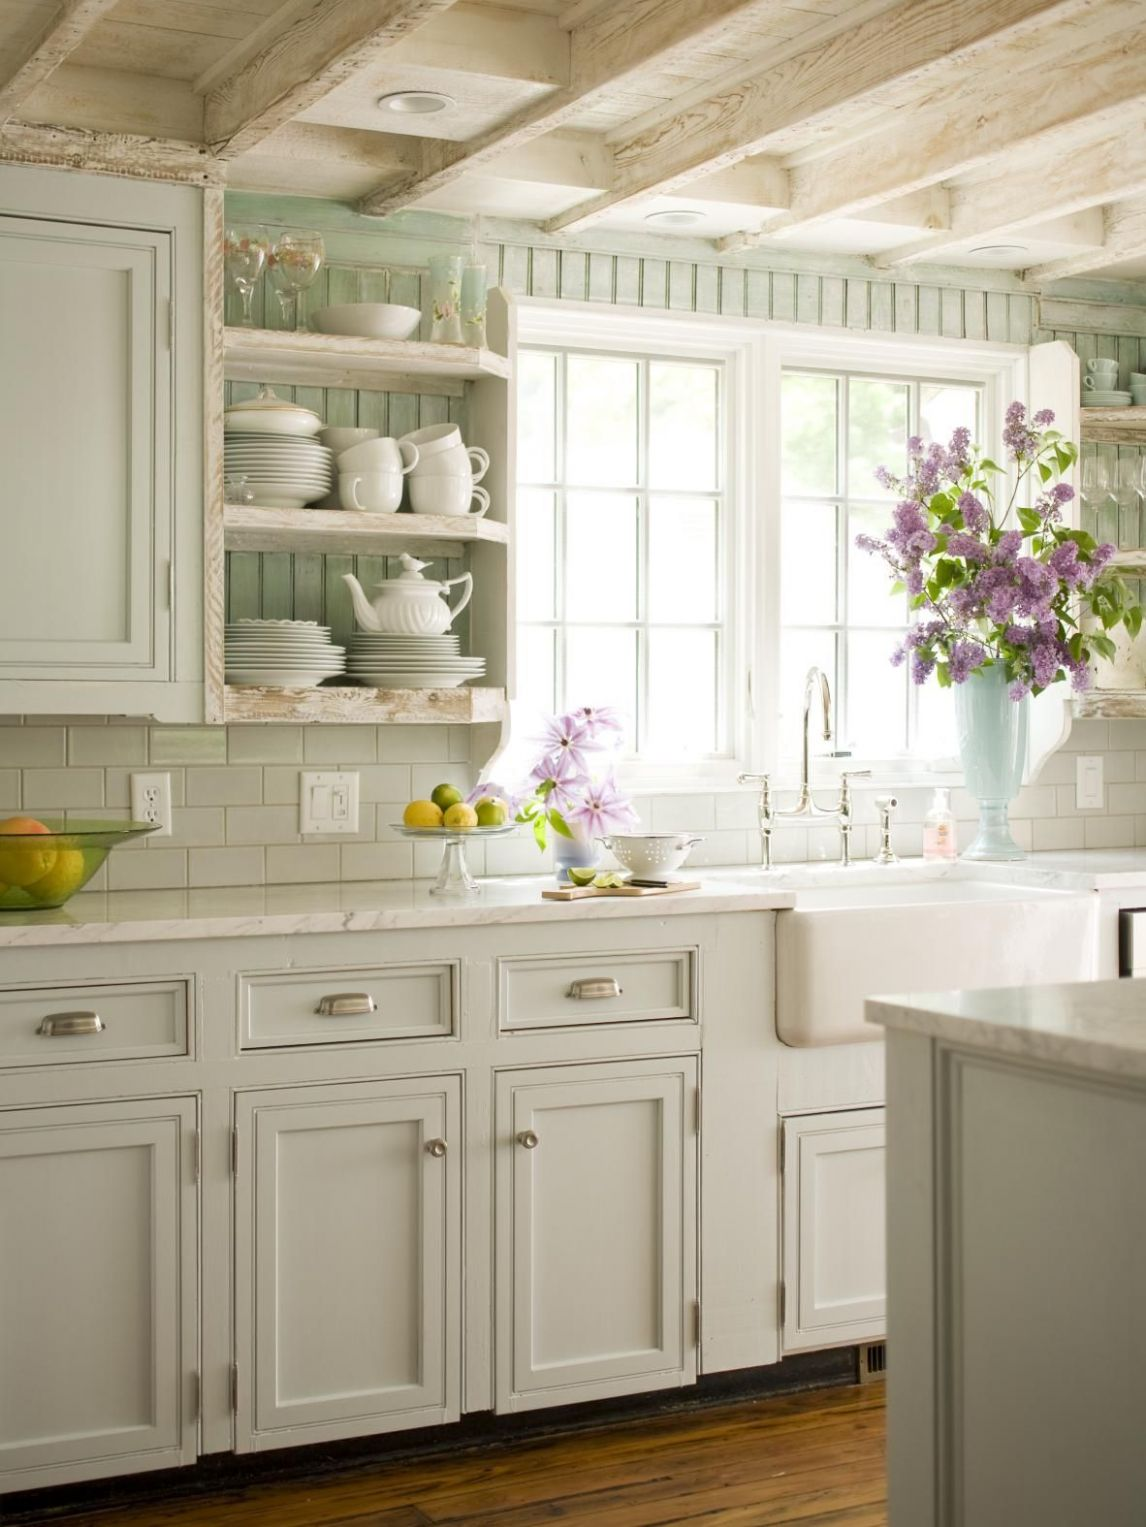 Decorate a Farmhouse Kitchen (With images) | Cottage kitchen ...